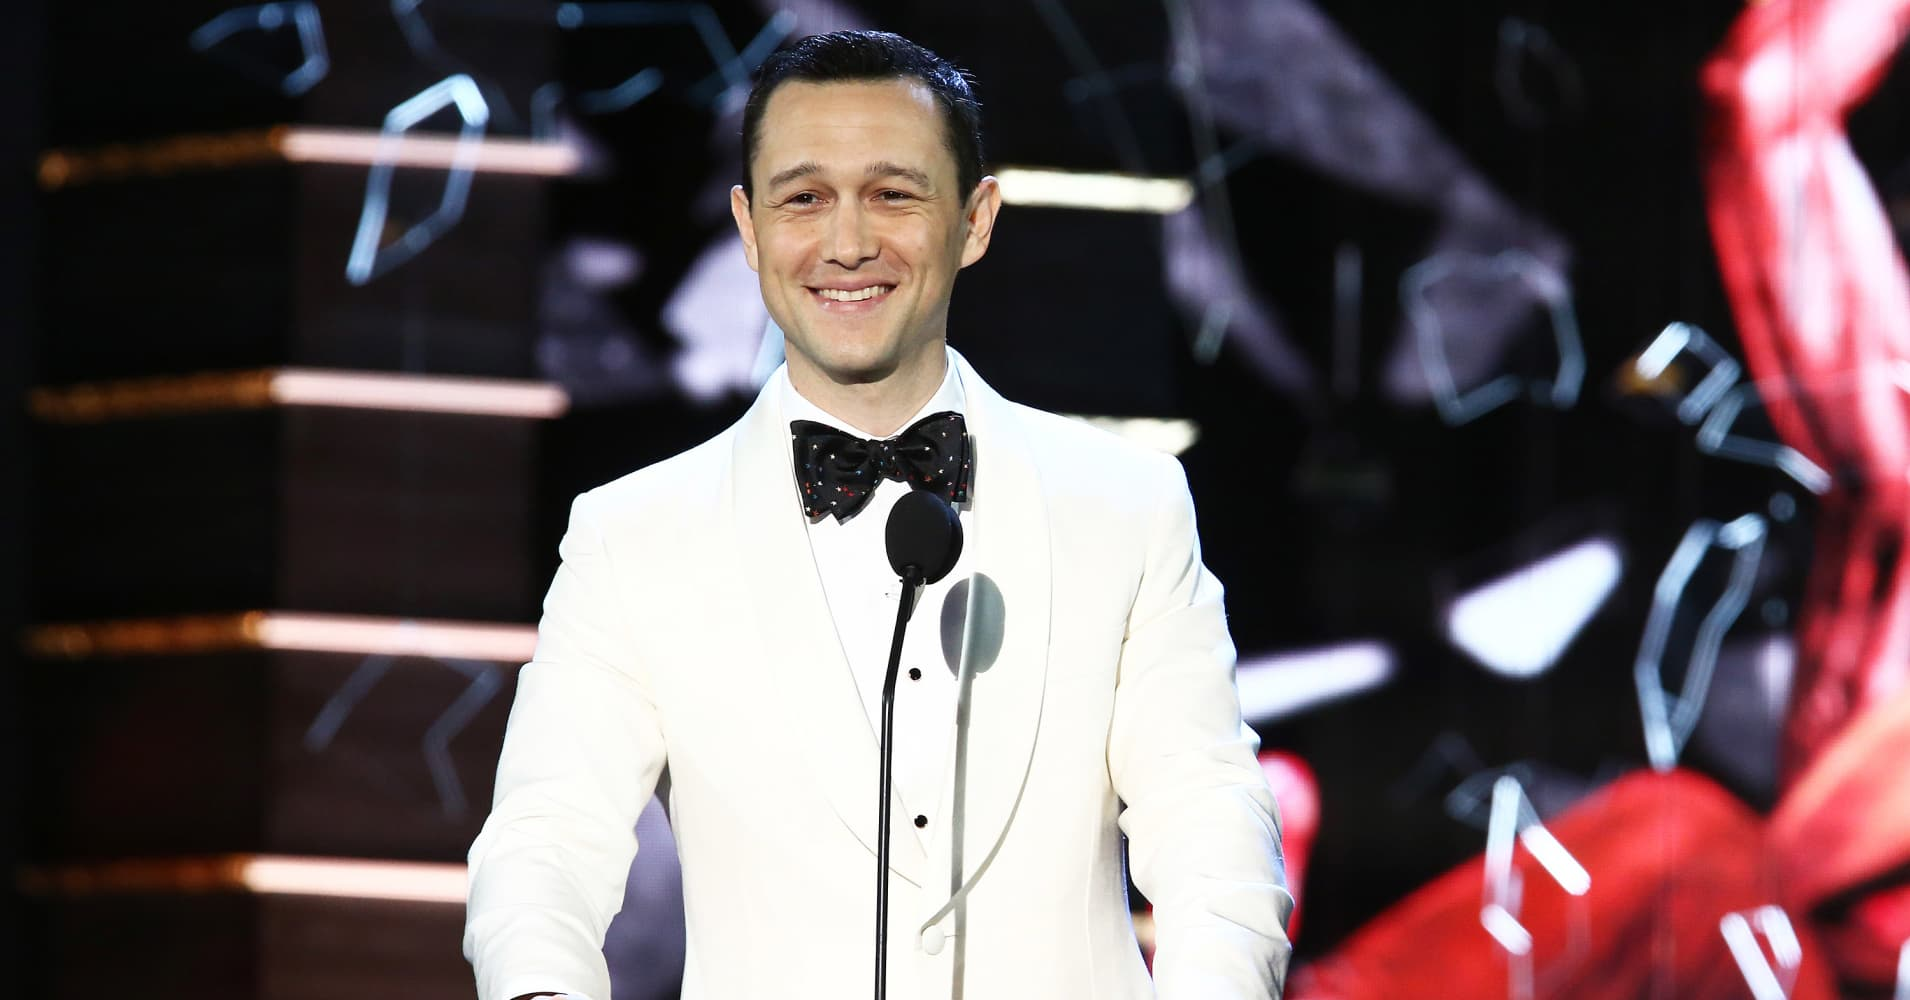 Joseph Gordon-Levitt's $3.8 million L.A. home is for sale — take a look inside